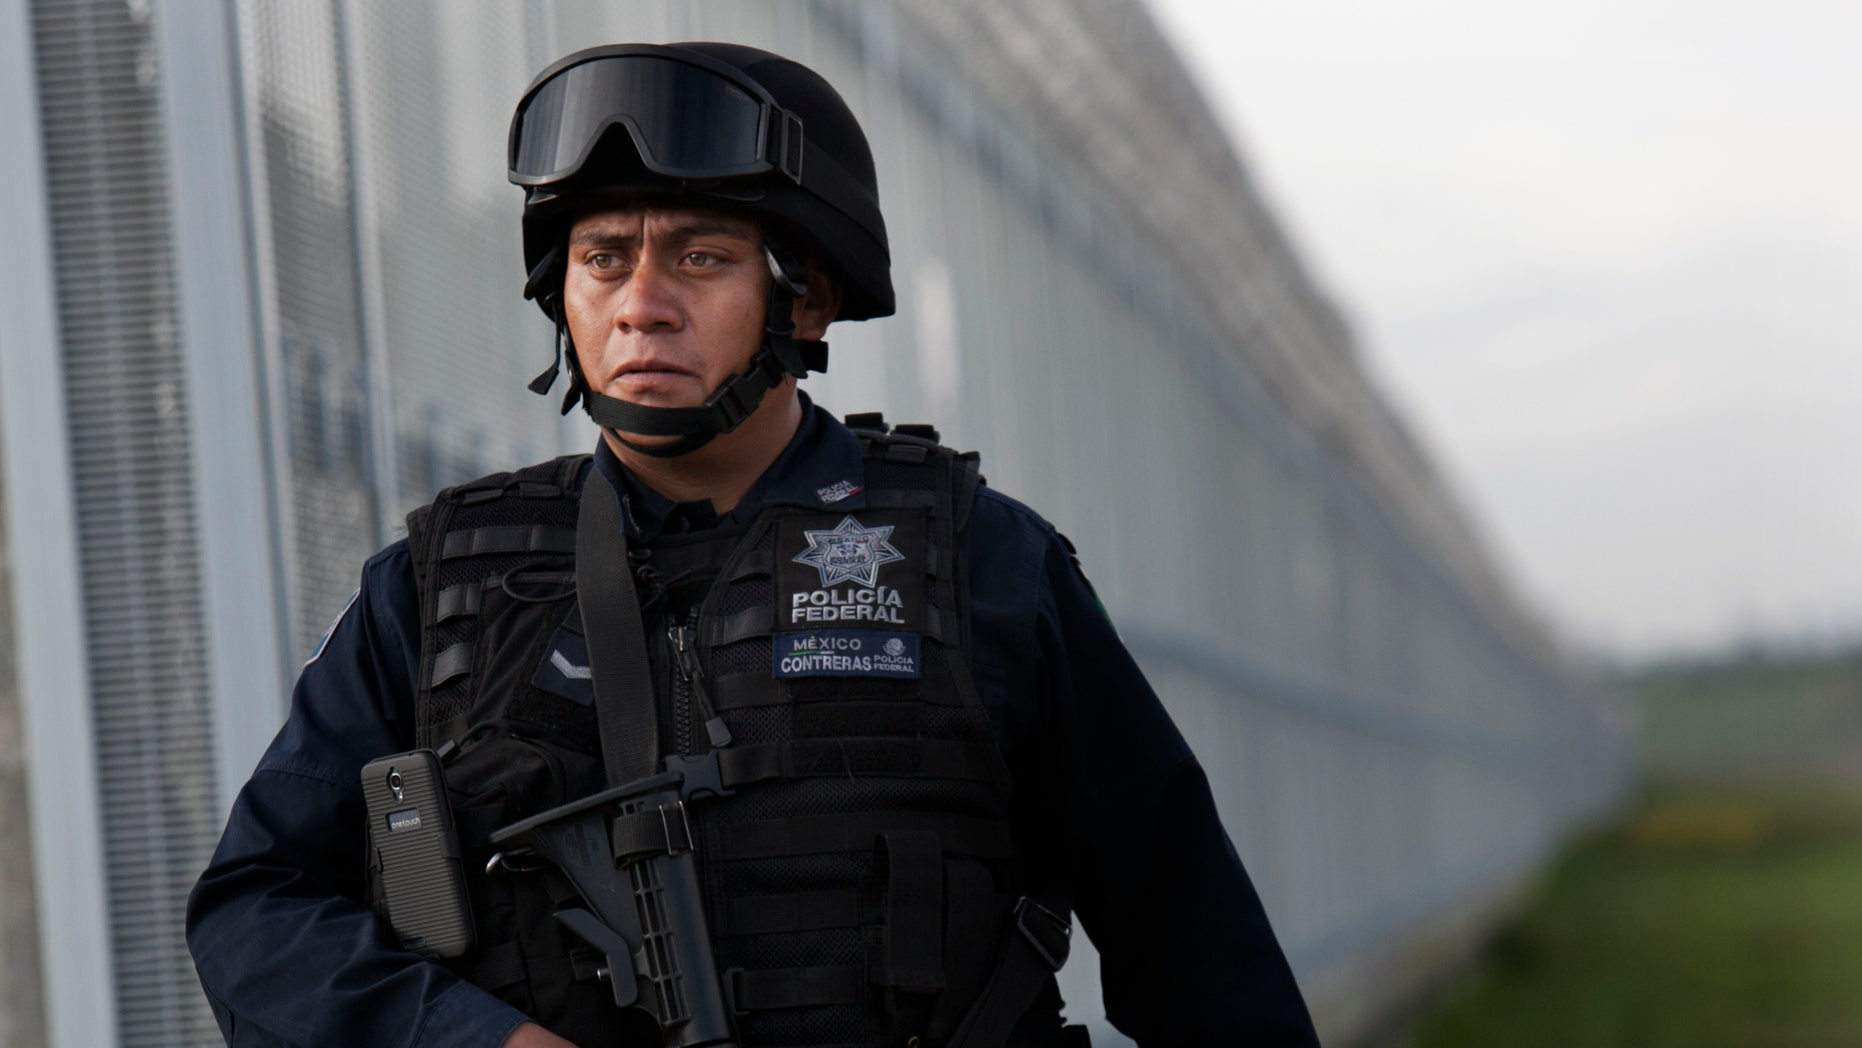 Federal police patrol near the Altiplano maximum security prison in Almoloya, Toluca, Mexico, early Sunday, July 12, 2015.